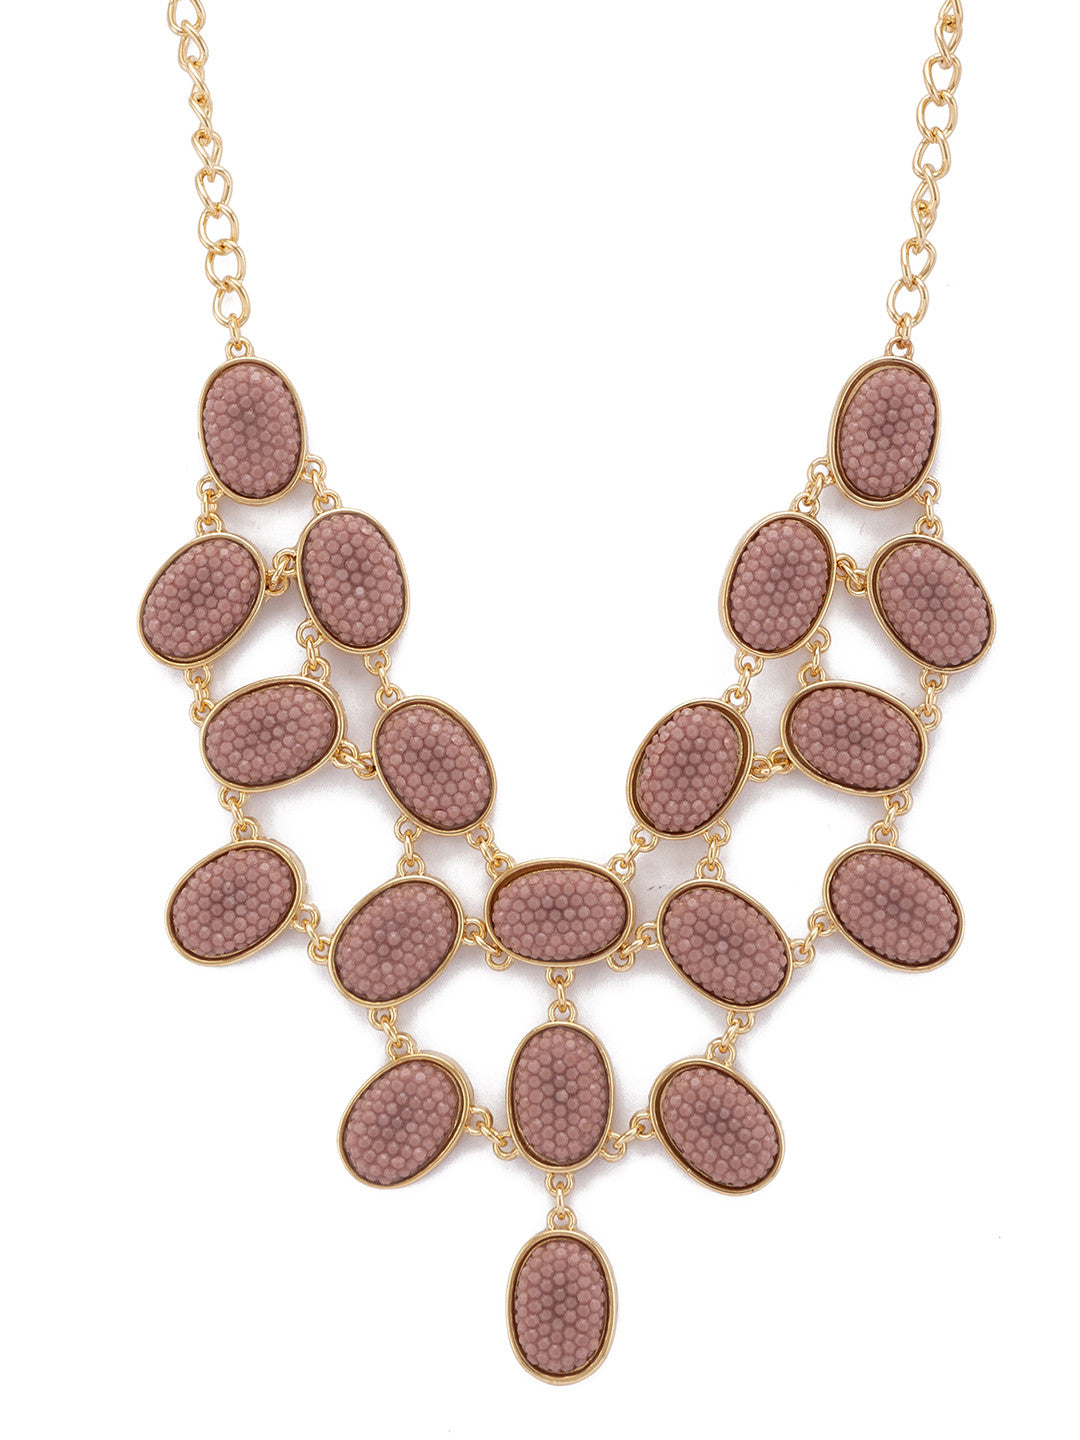 Gold Stones and Beads Necklace-2